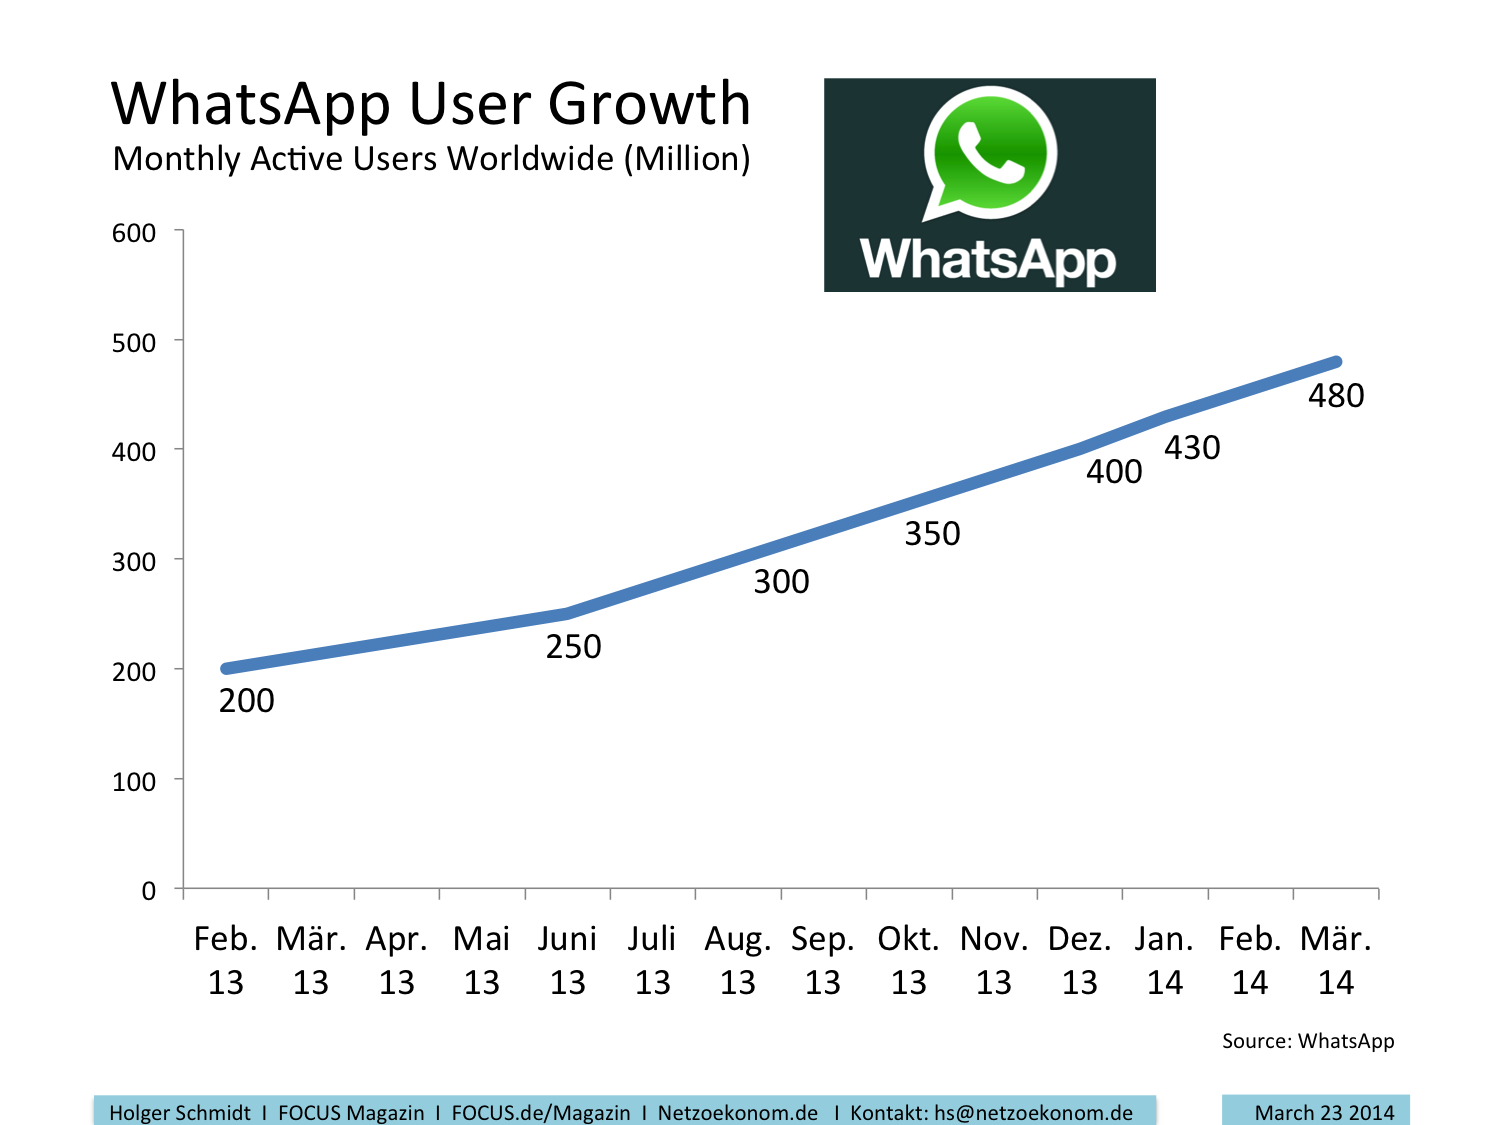 WhatsApp Usage Worldwide